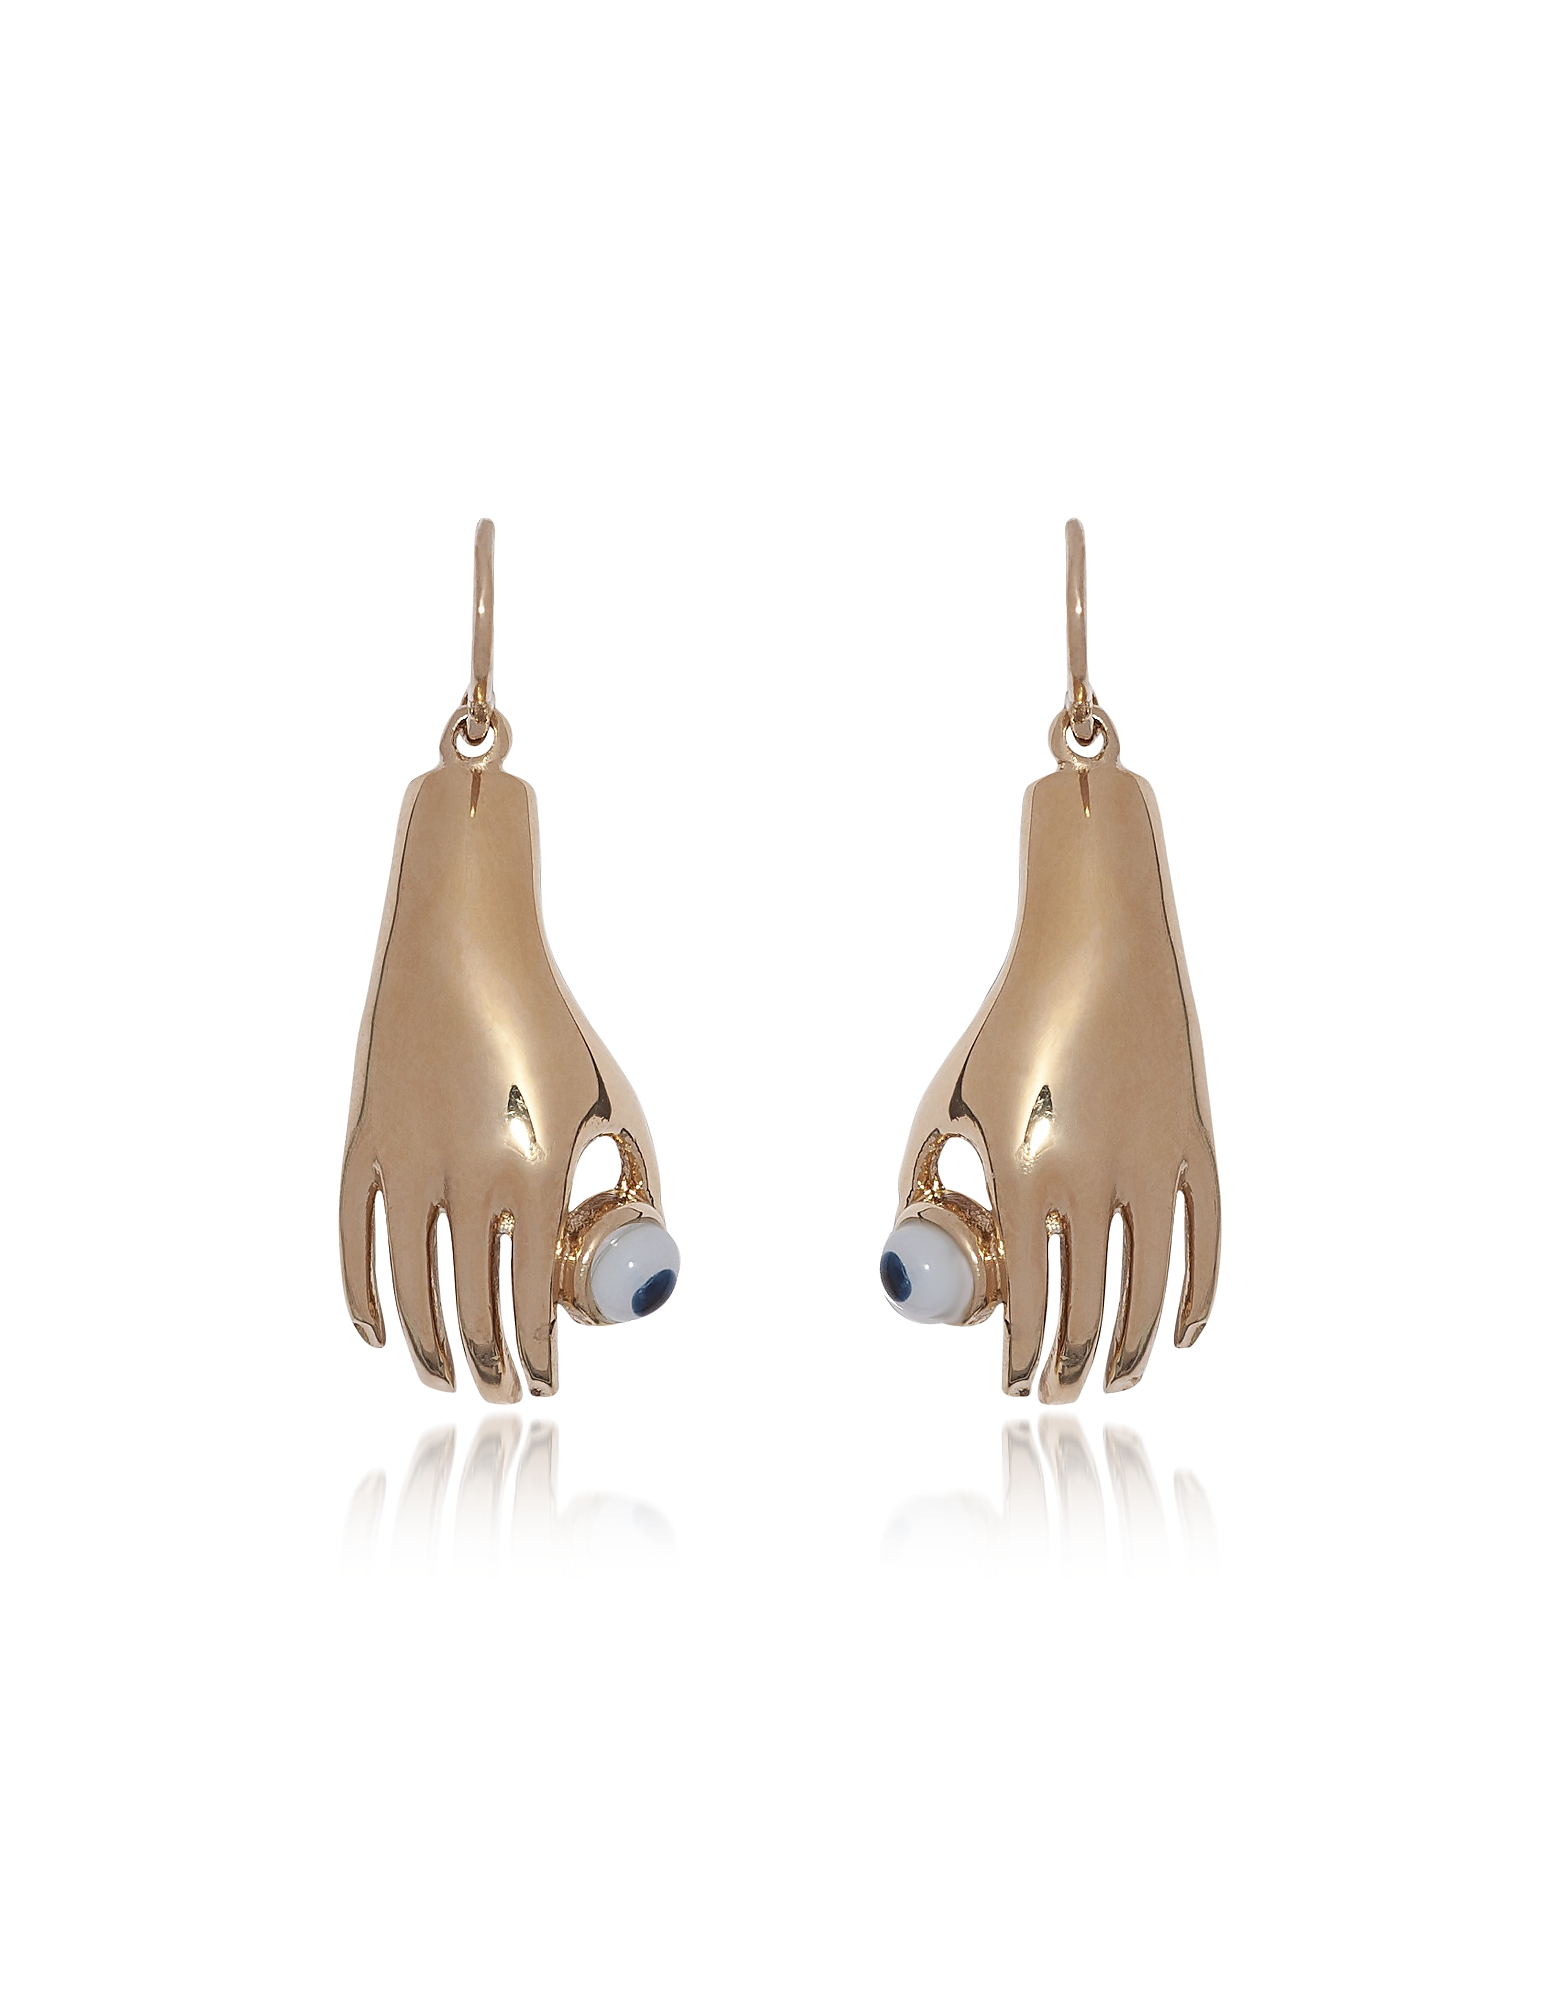 Medium Bronze Hand Earrings w/ Blue Eye